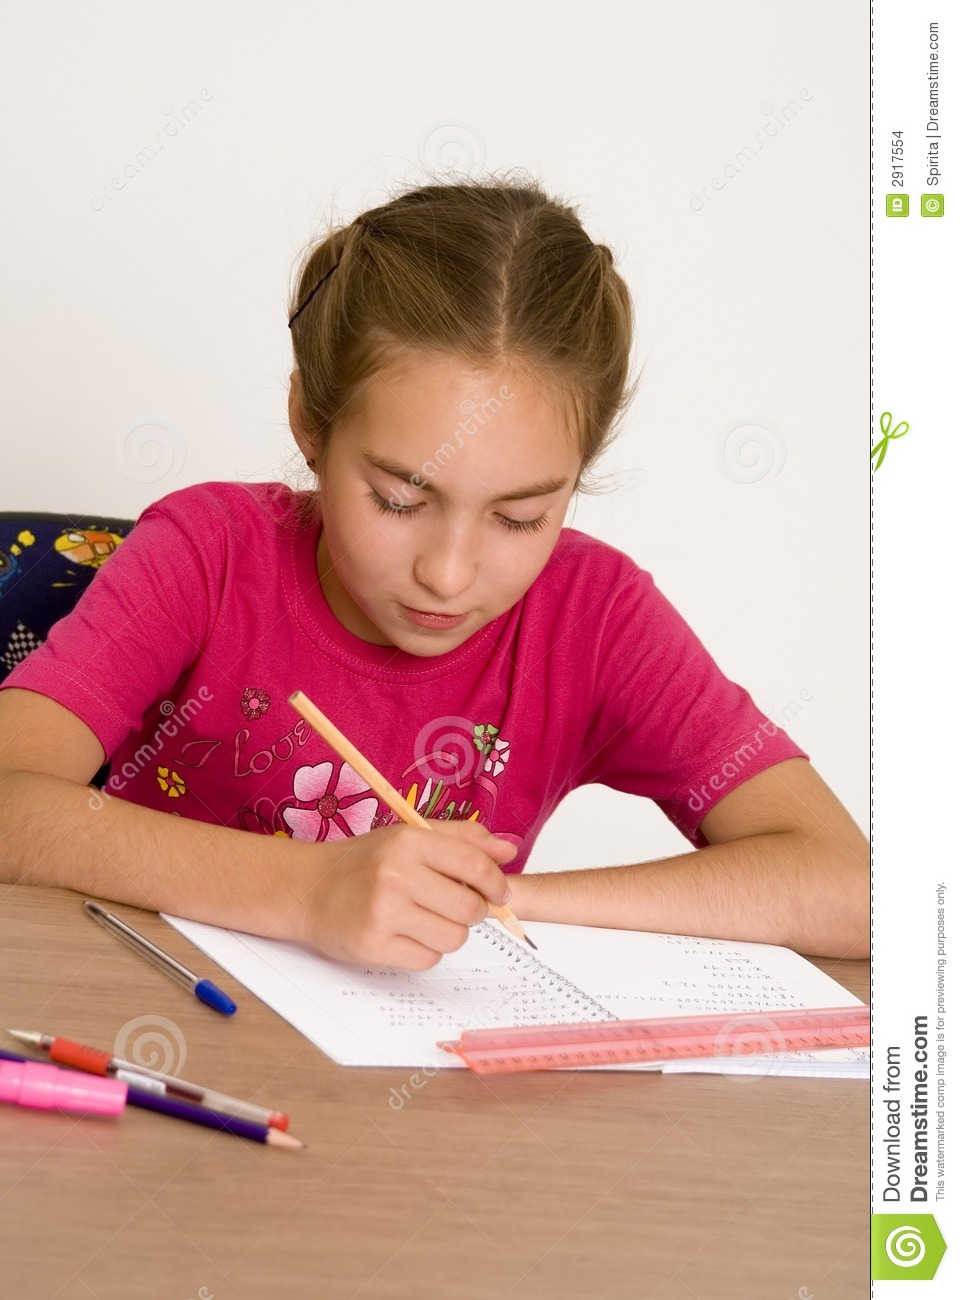 Writing good essays for scholarships